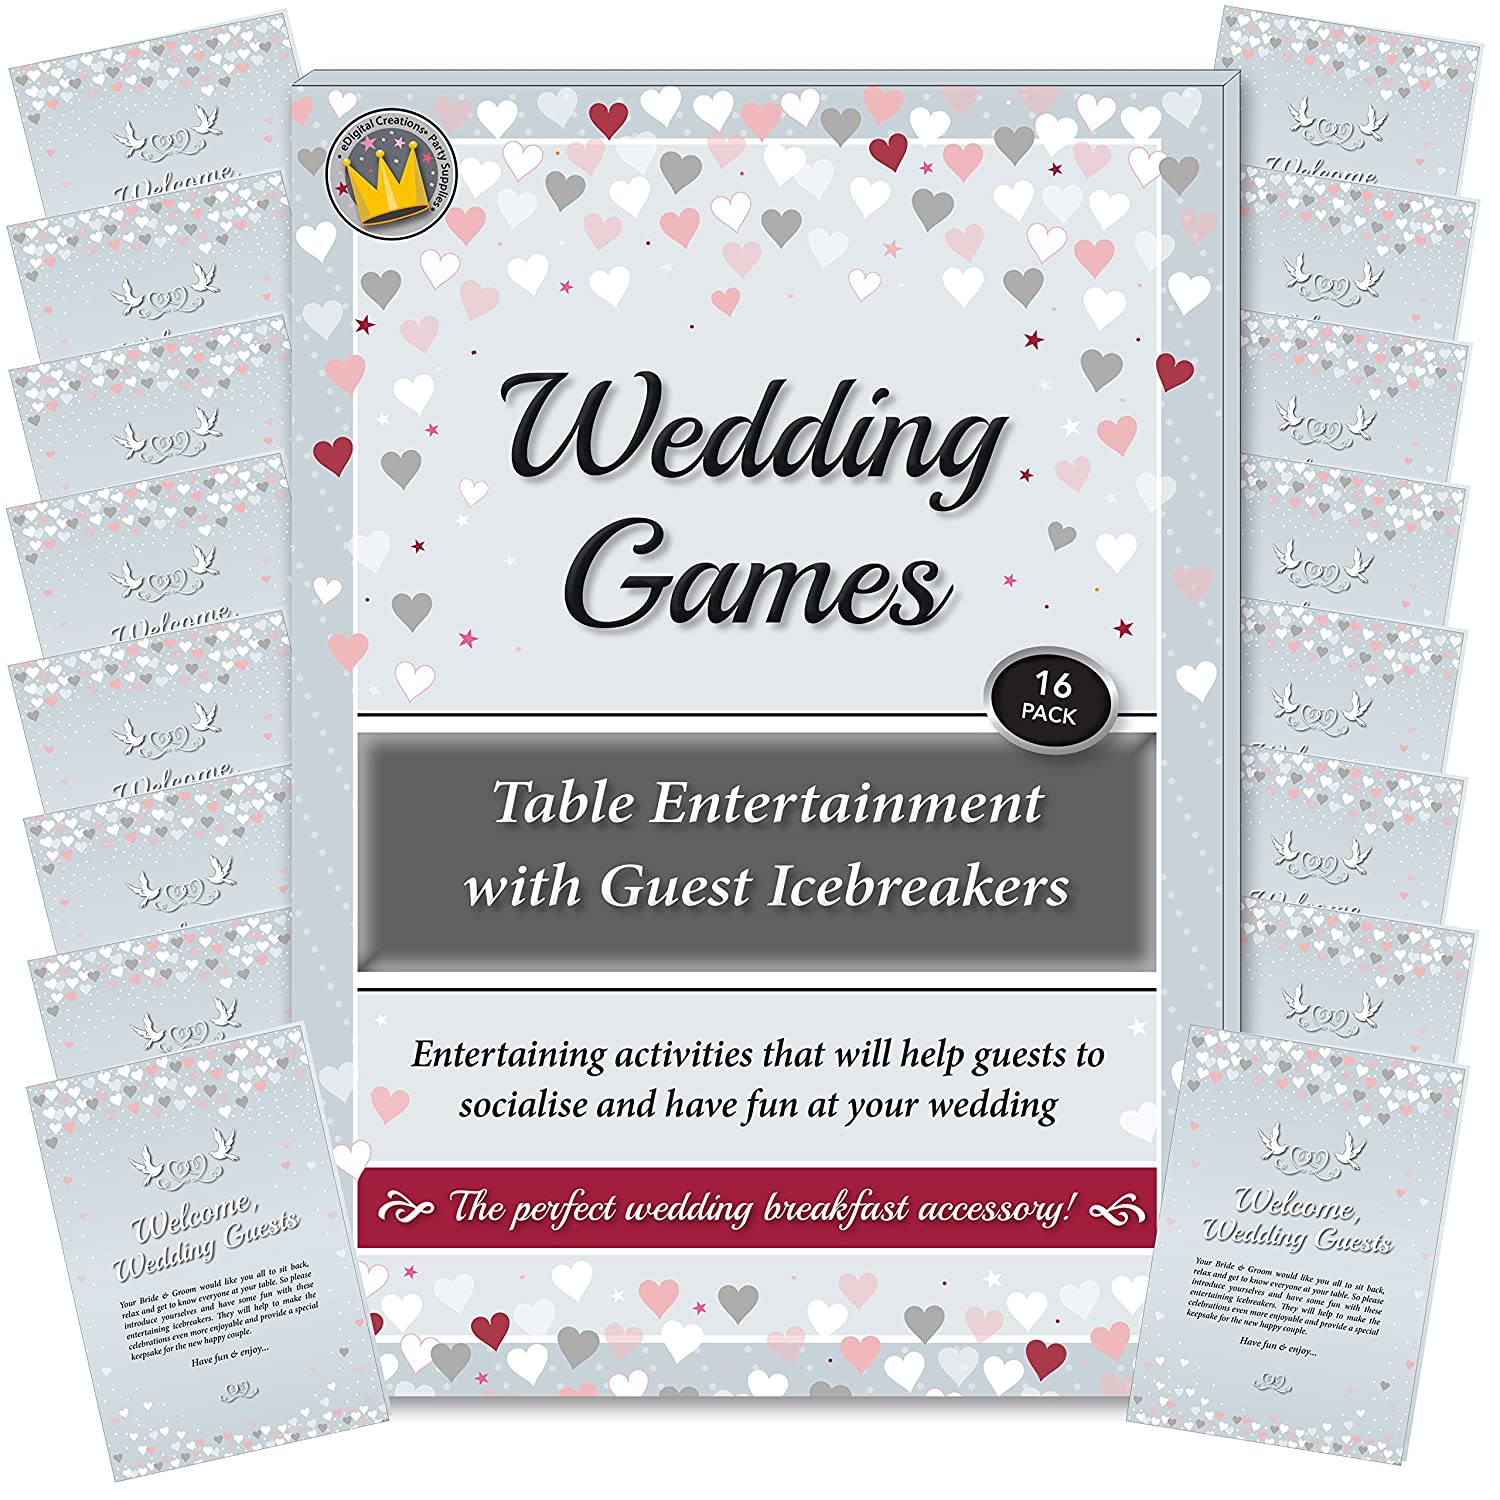 Wedding Games - Table Entertainment and Icebreakers for Guests ...